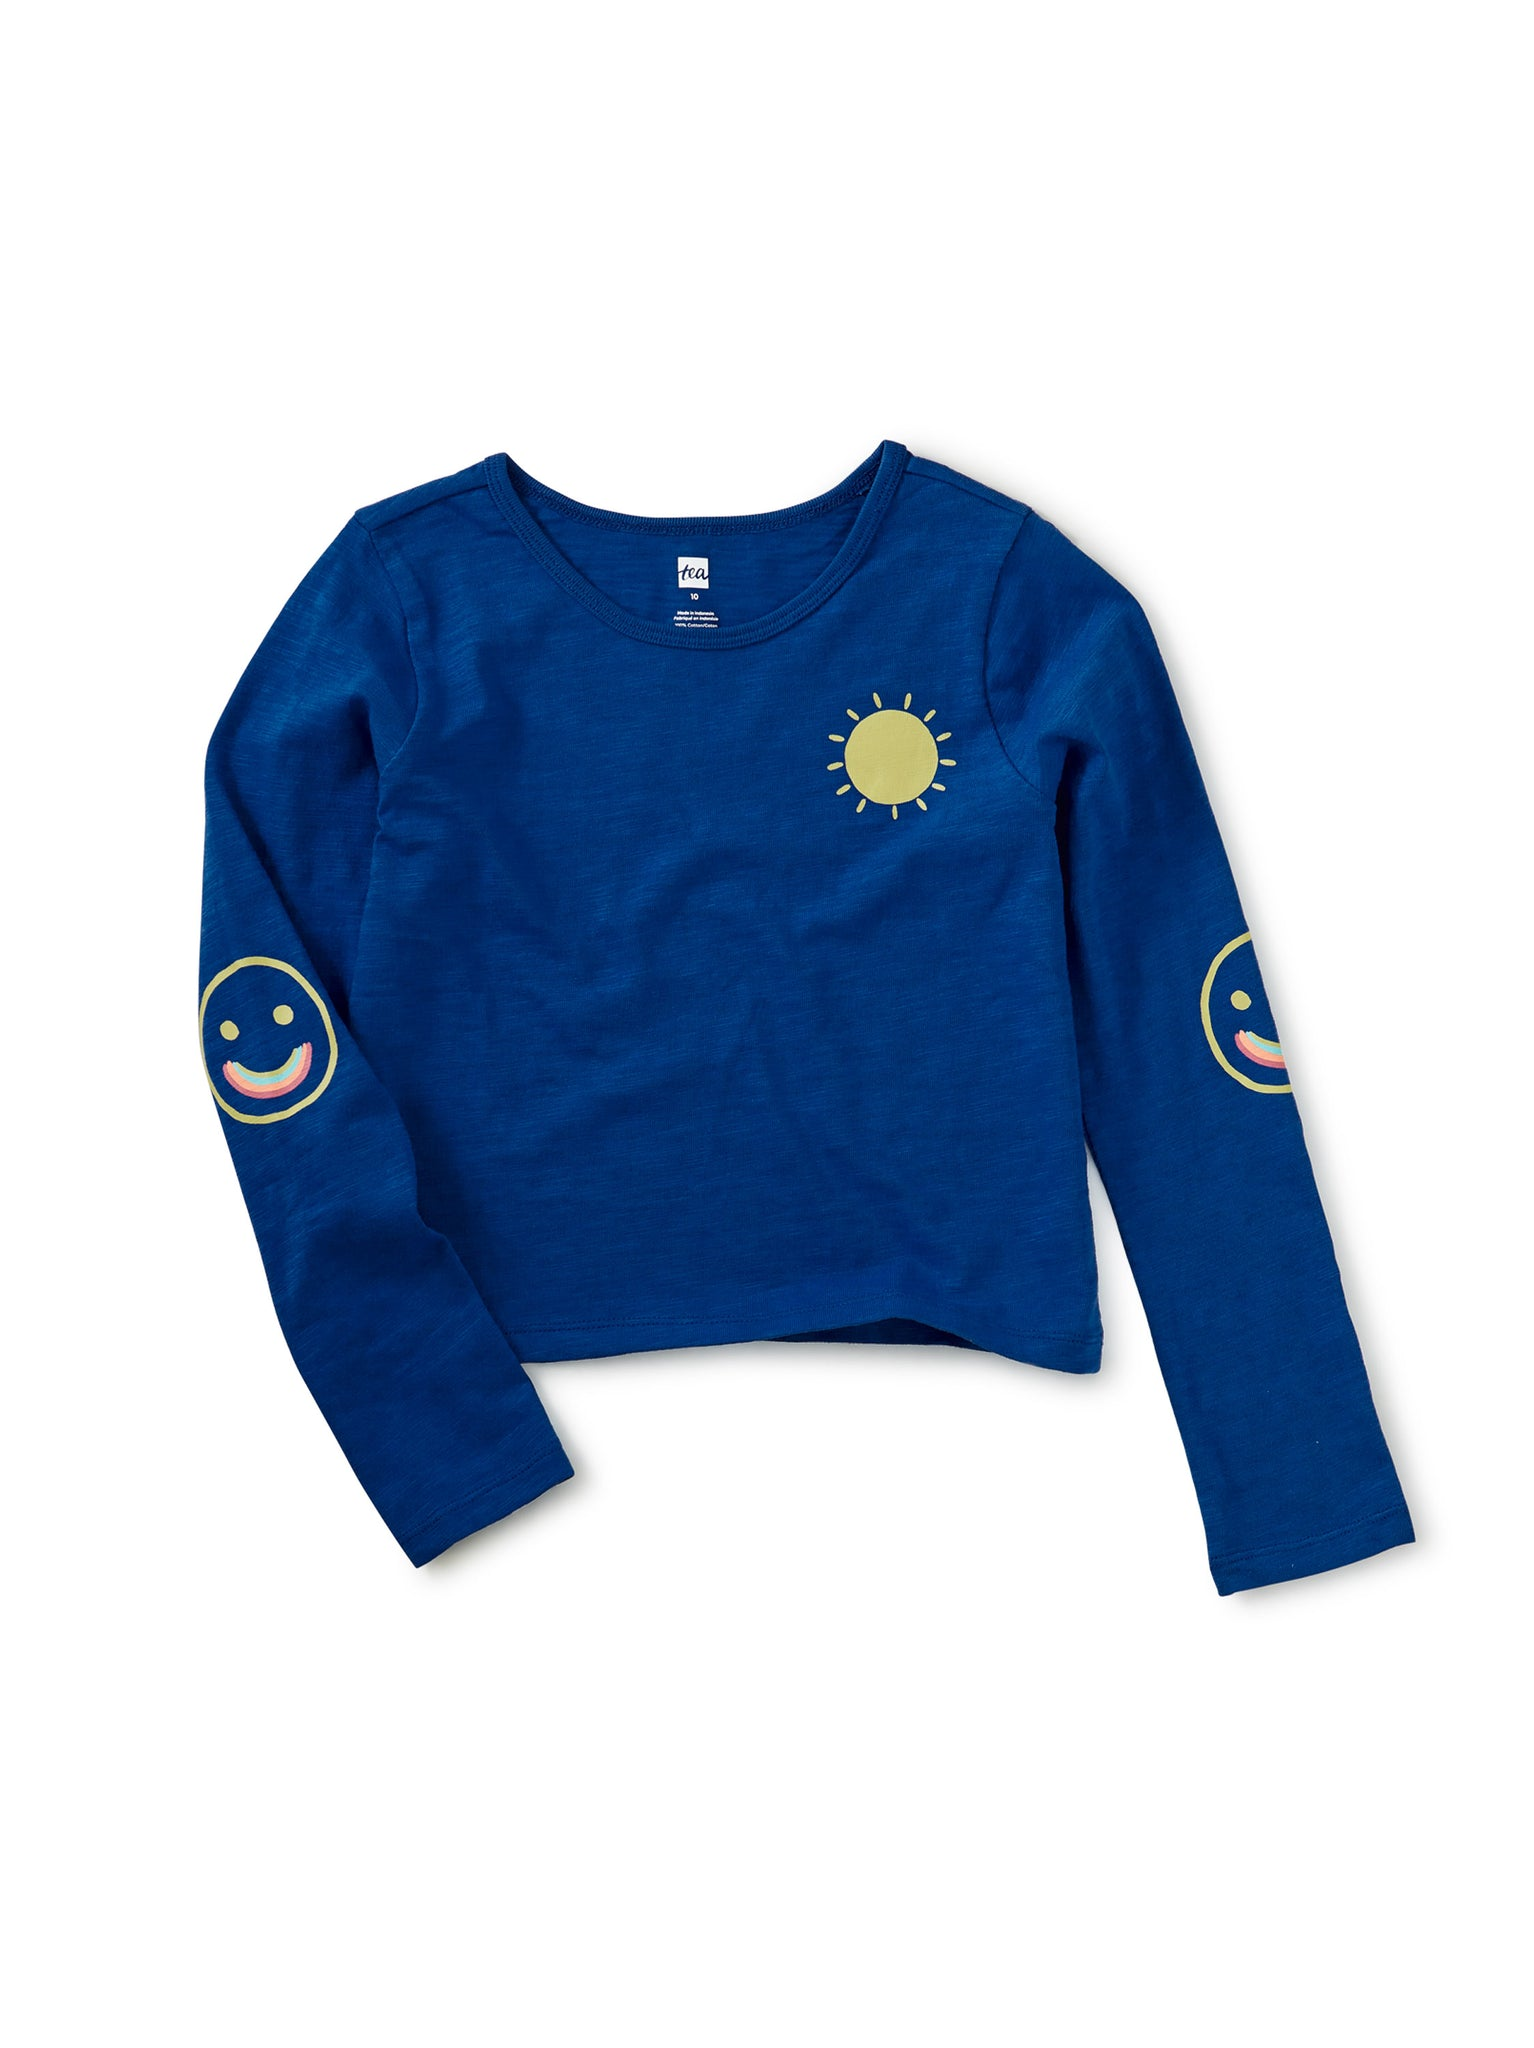 Sunshine Elbow Patch Tee